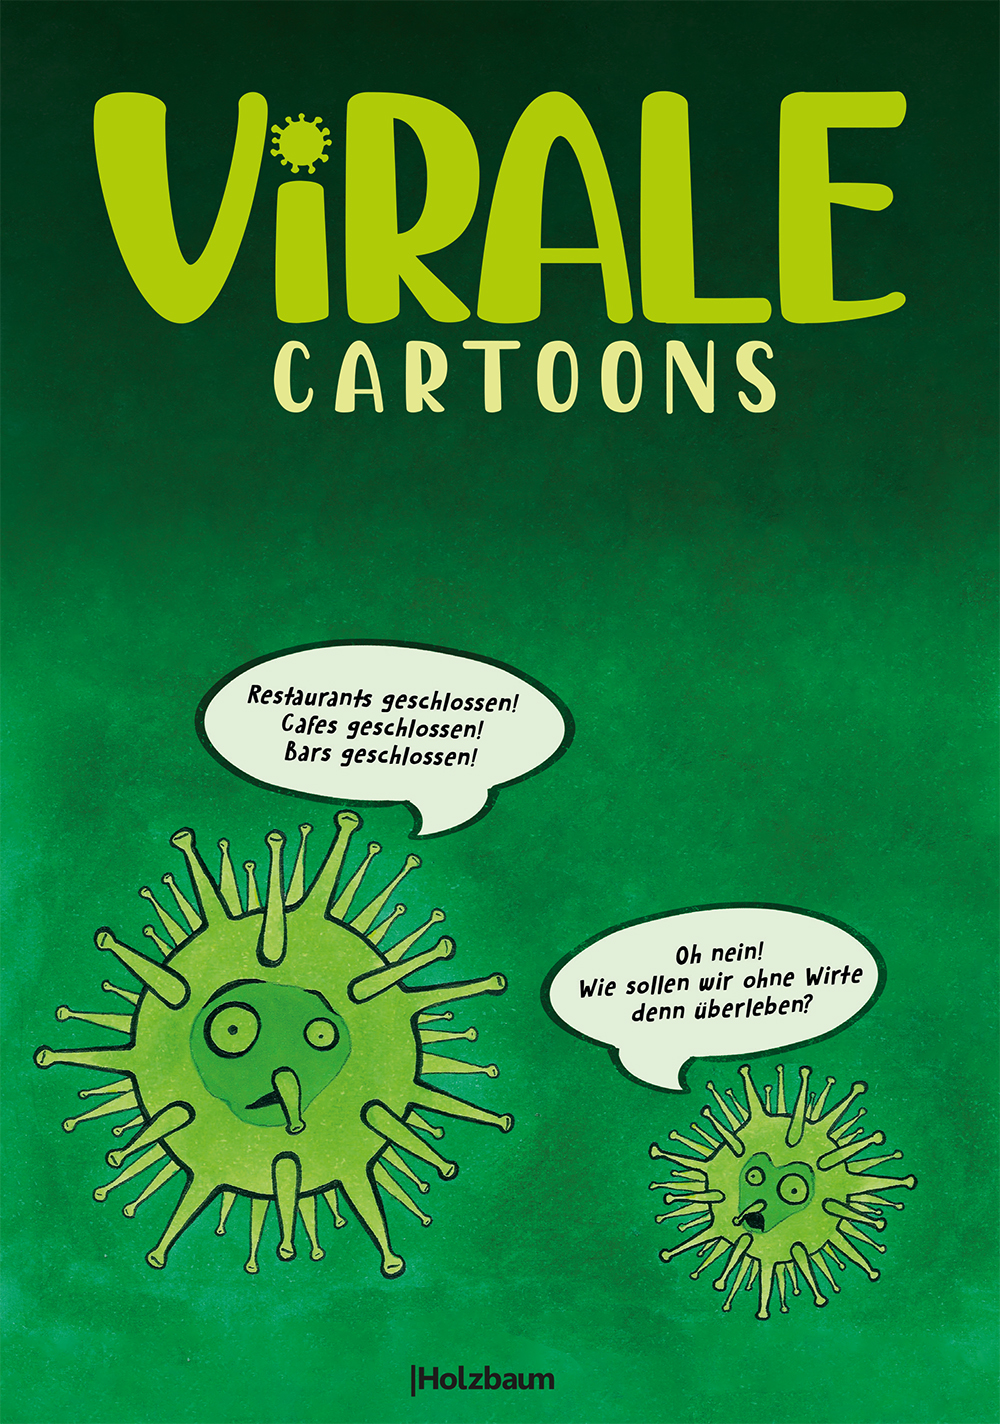 Virale Cartoons